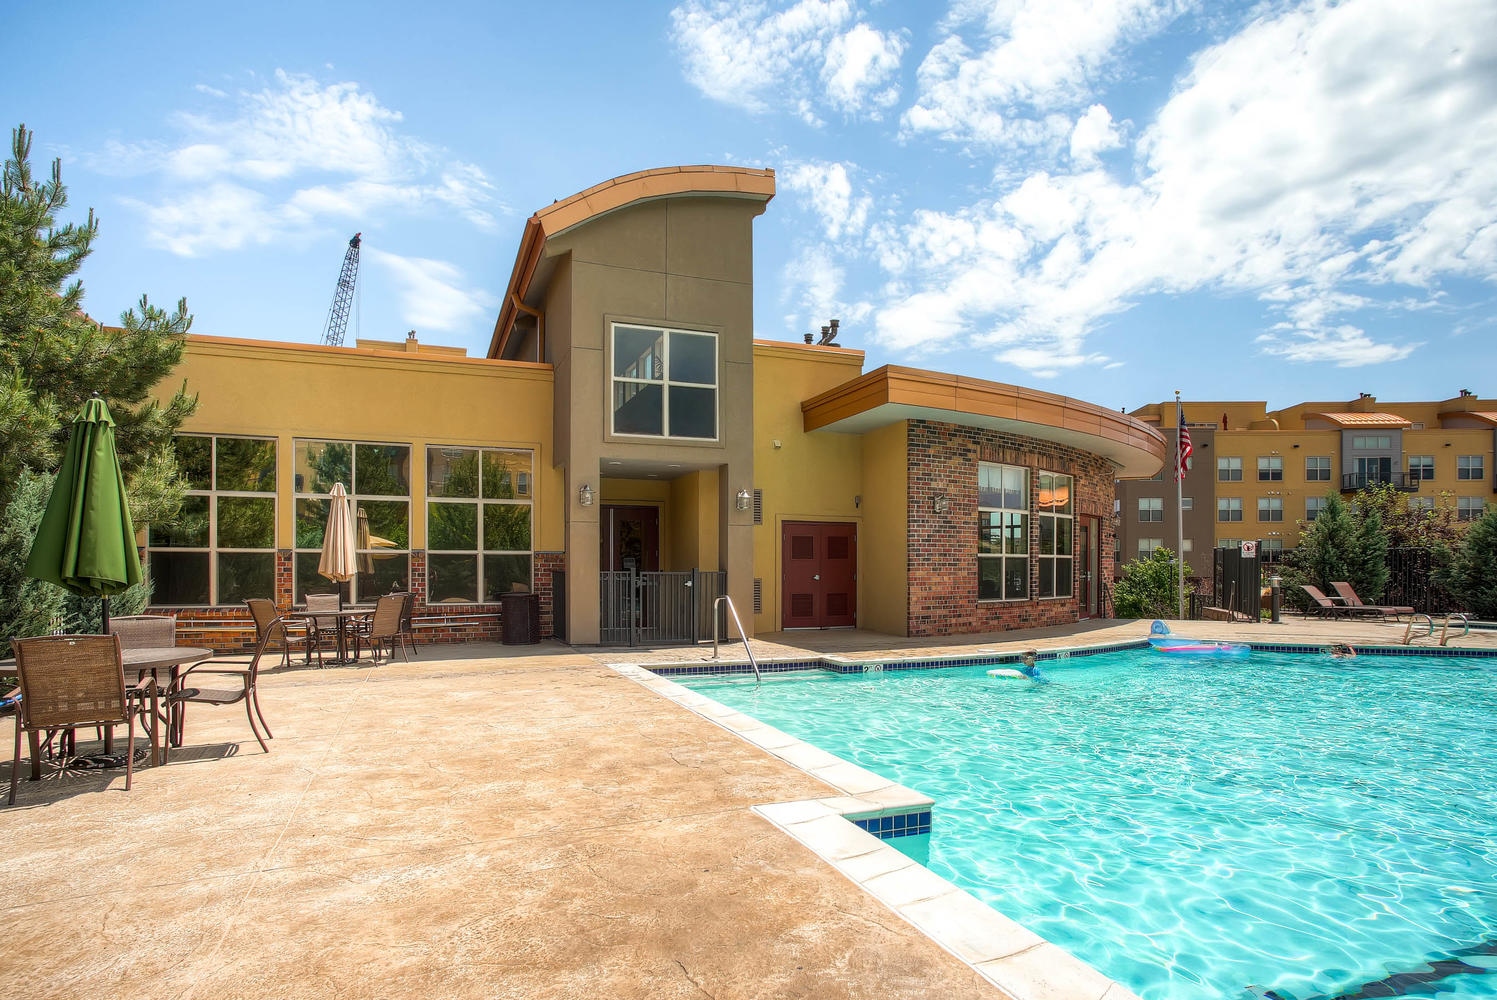 9019 E Panorama Cir D409-large-033-034-Exterior Pool-1497x1000-72dpi